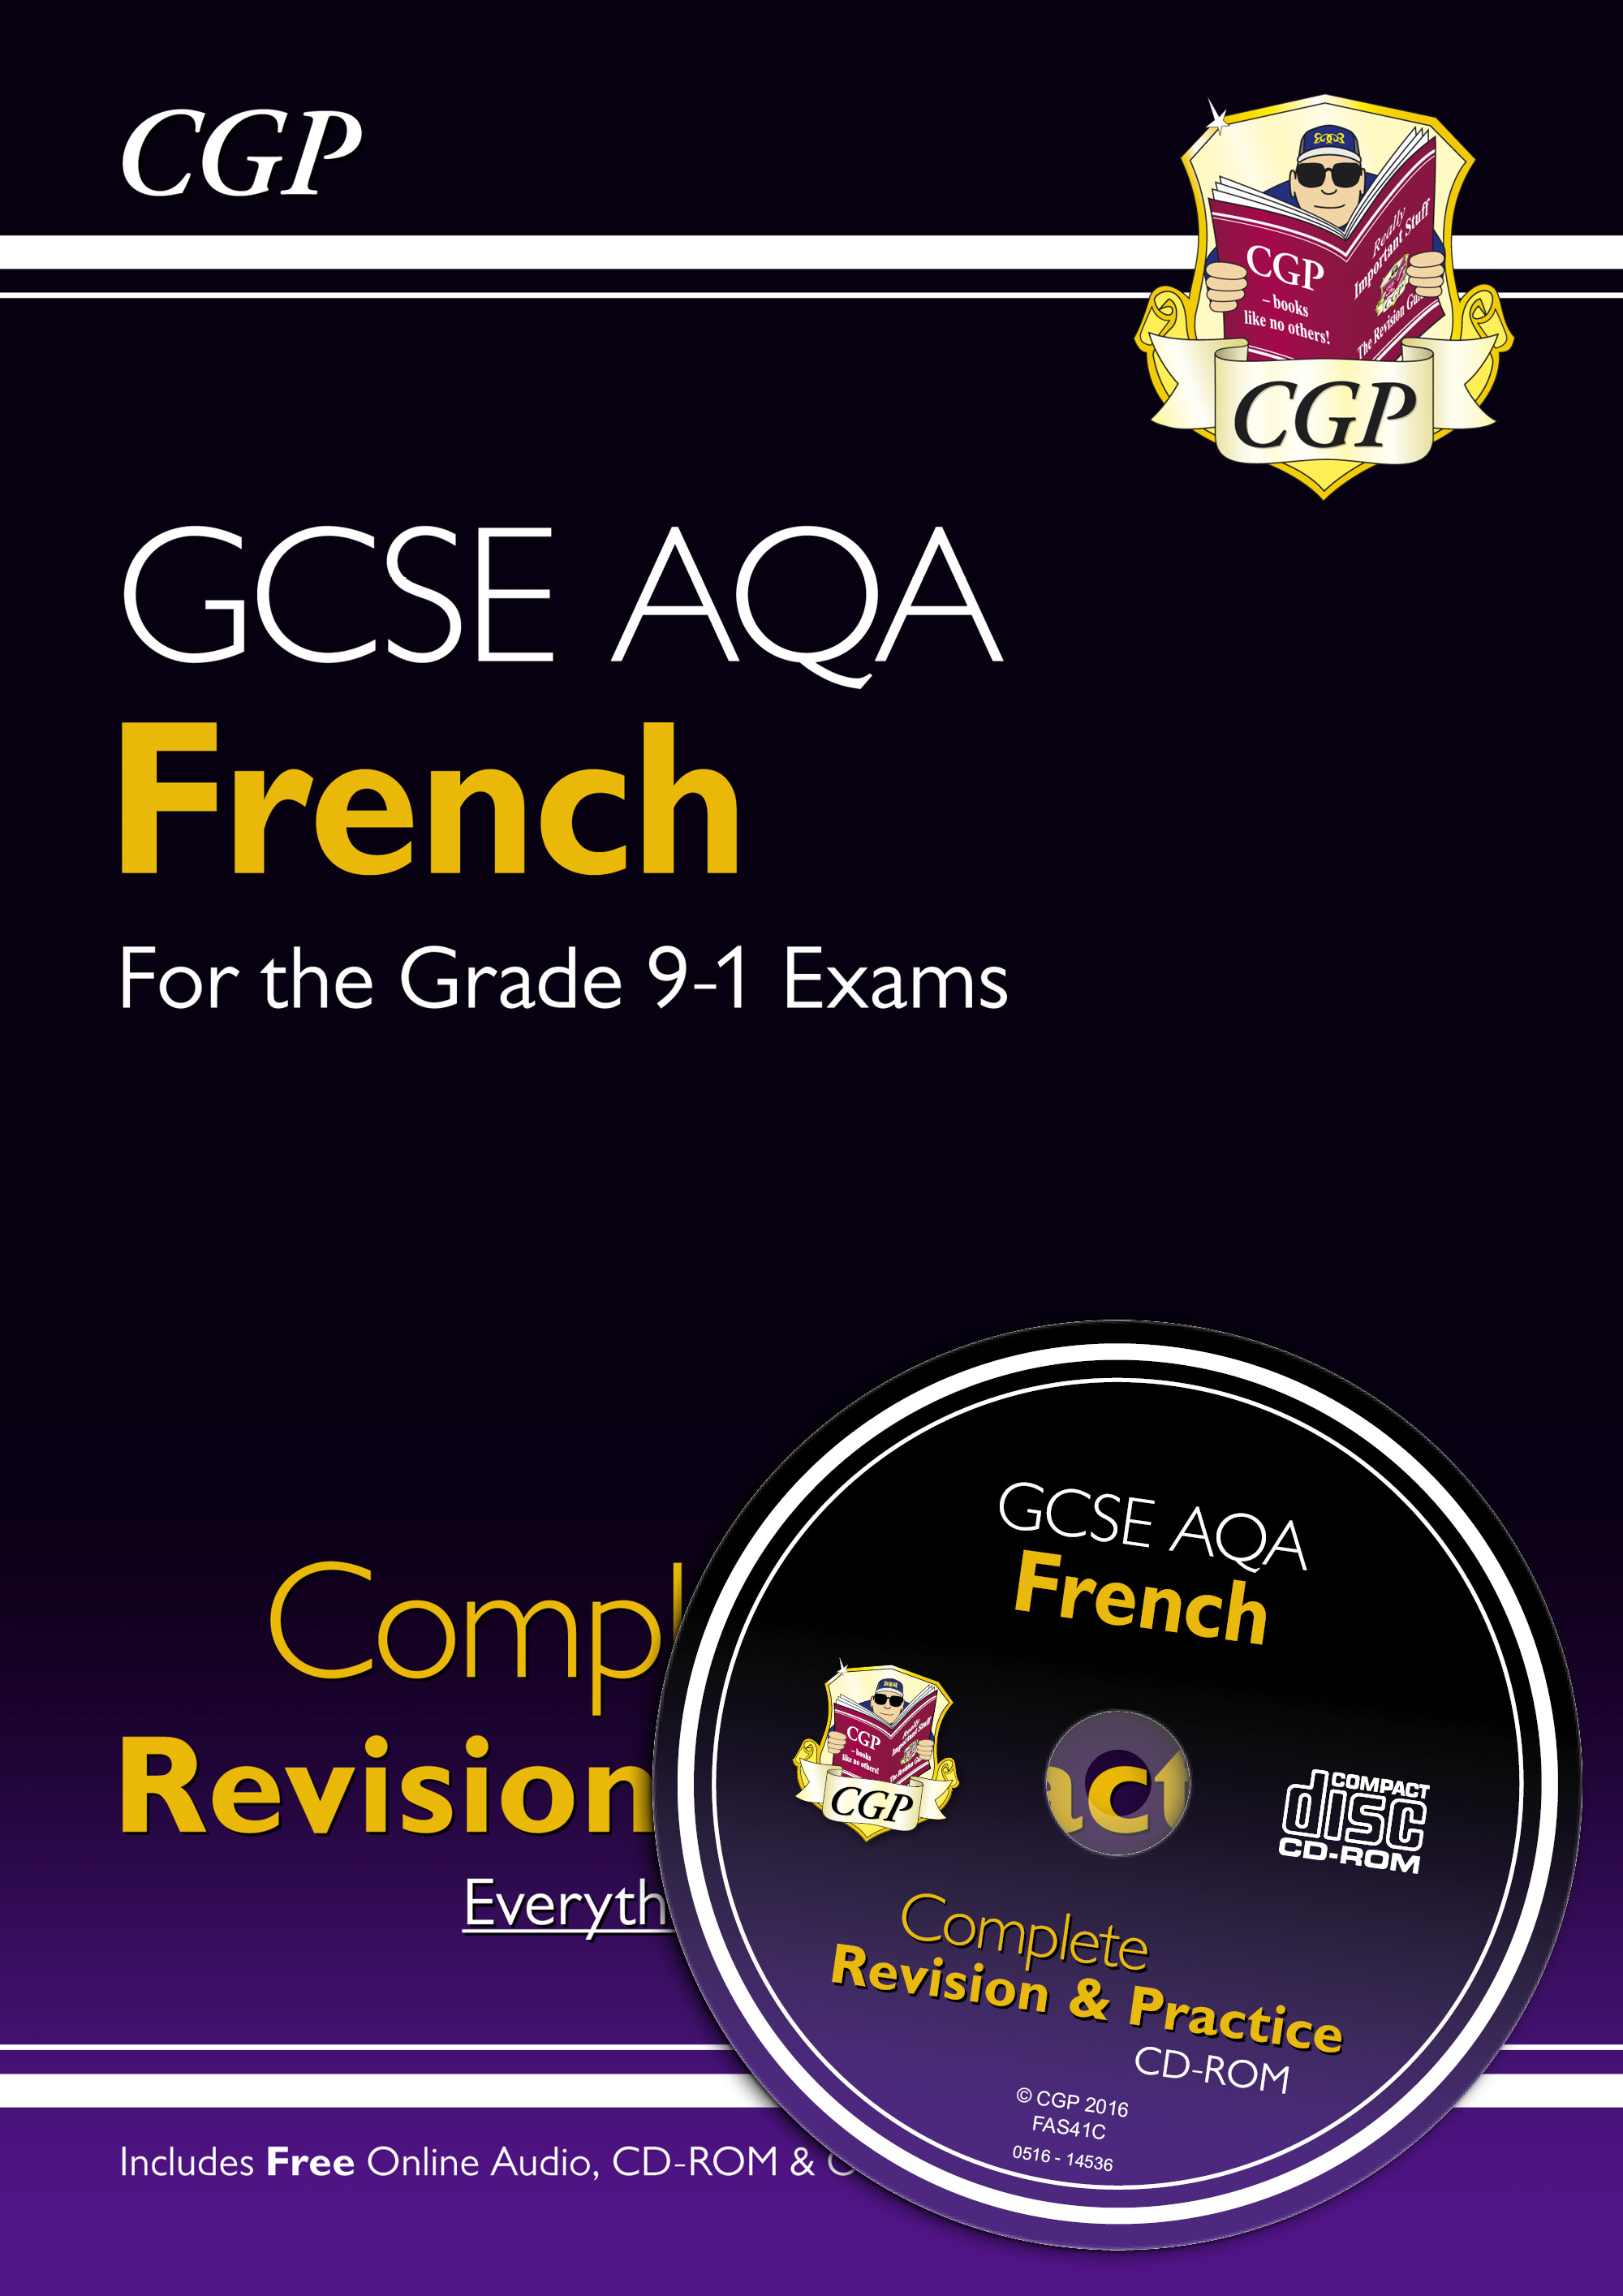 FAS41 - GCSE French AQA Complete Revision & Practice (with CD & Online Edition) - Grade 9-1 Course